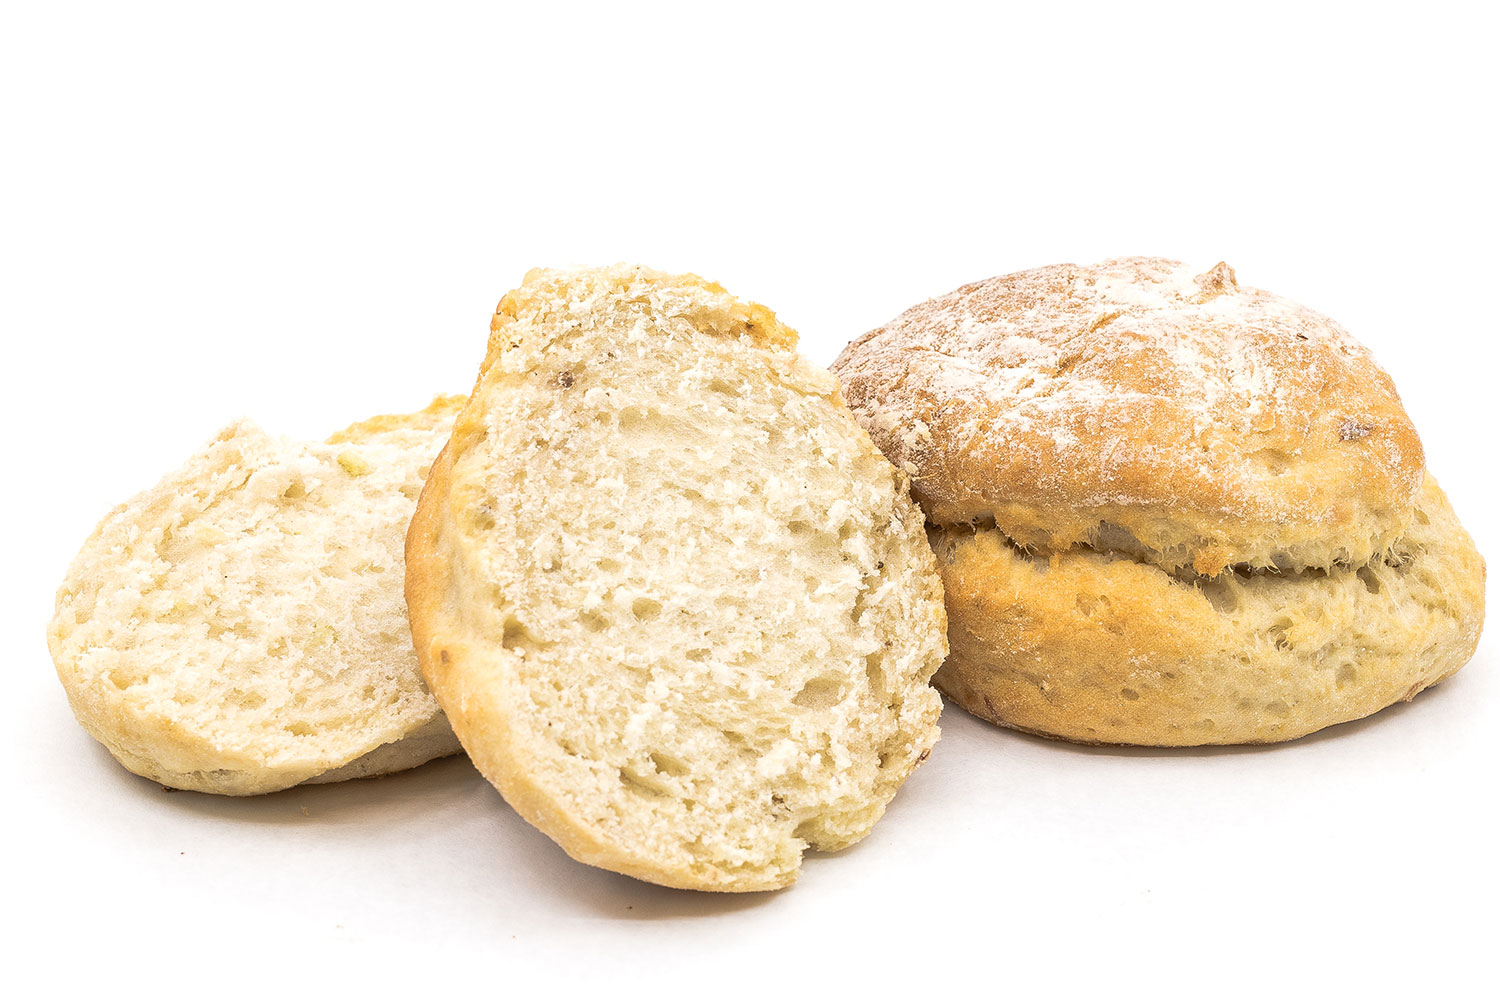 Pineapple 'Pina Colada' Cream Scones